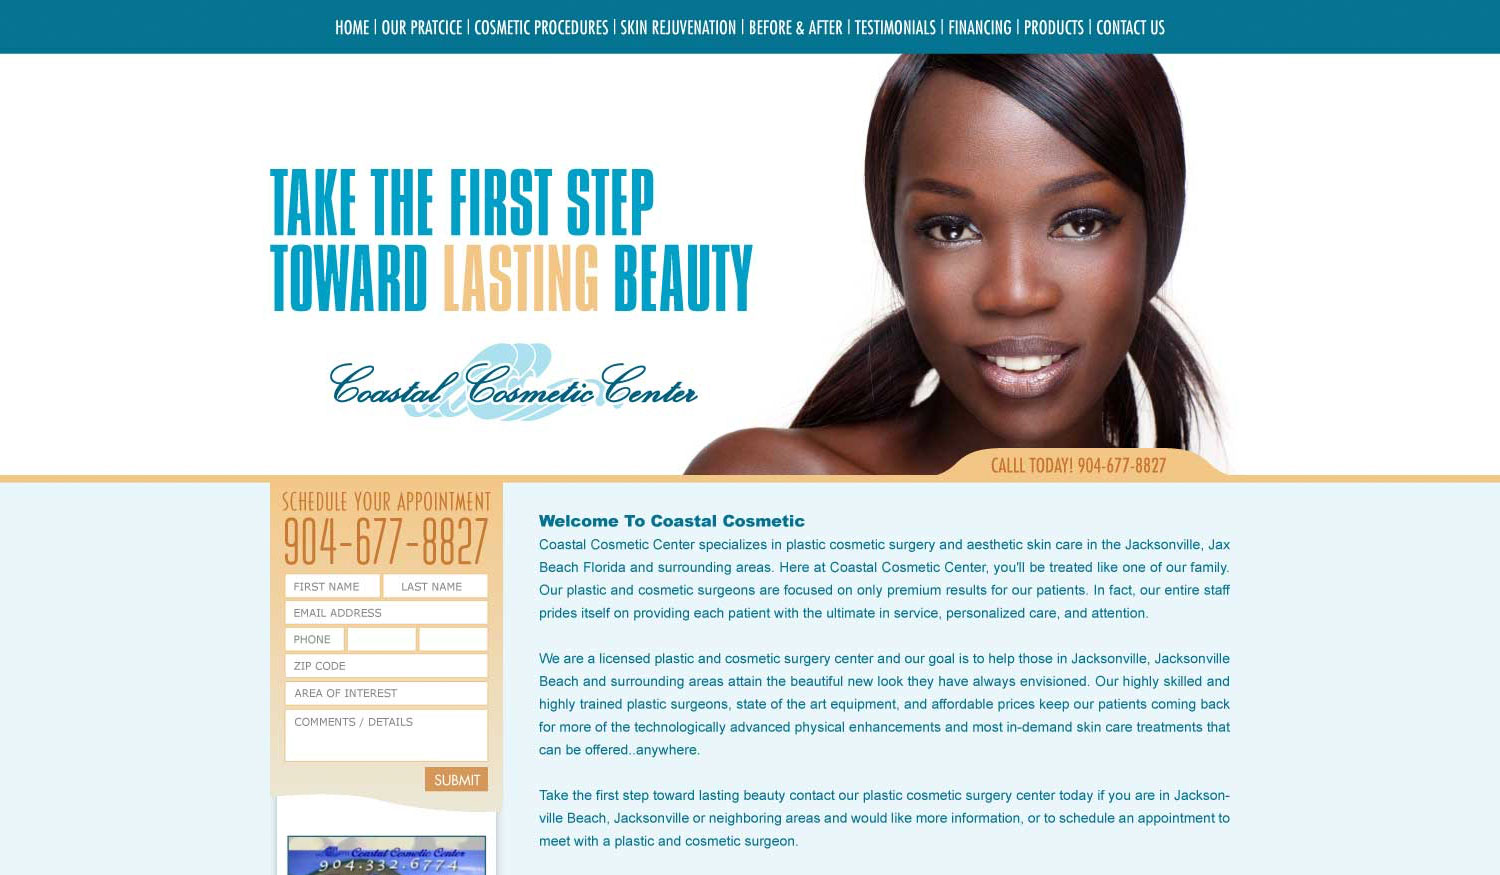 coastalcosmetic.com-large